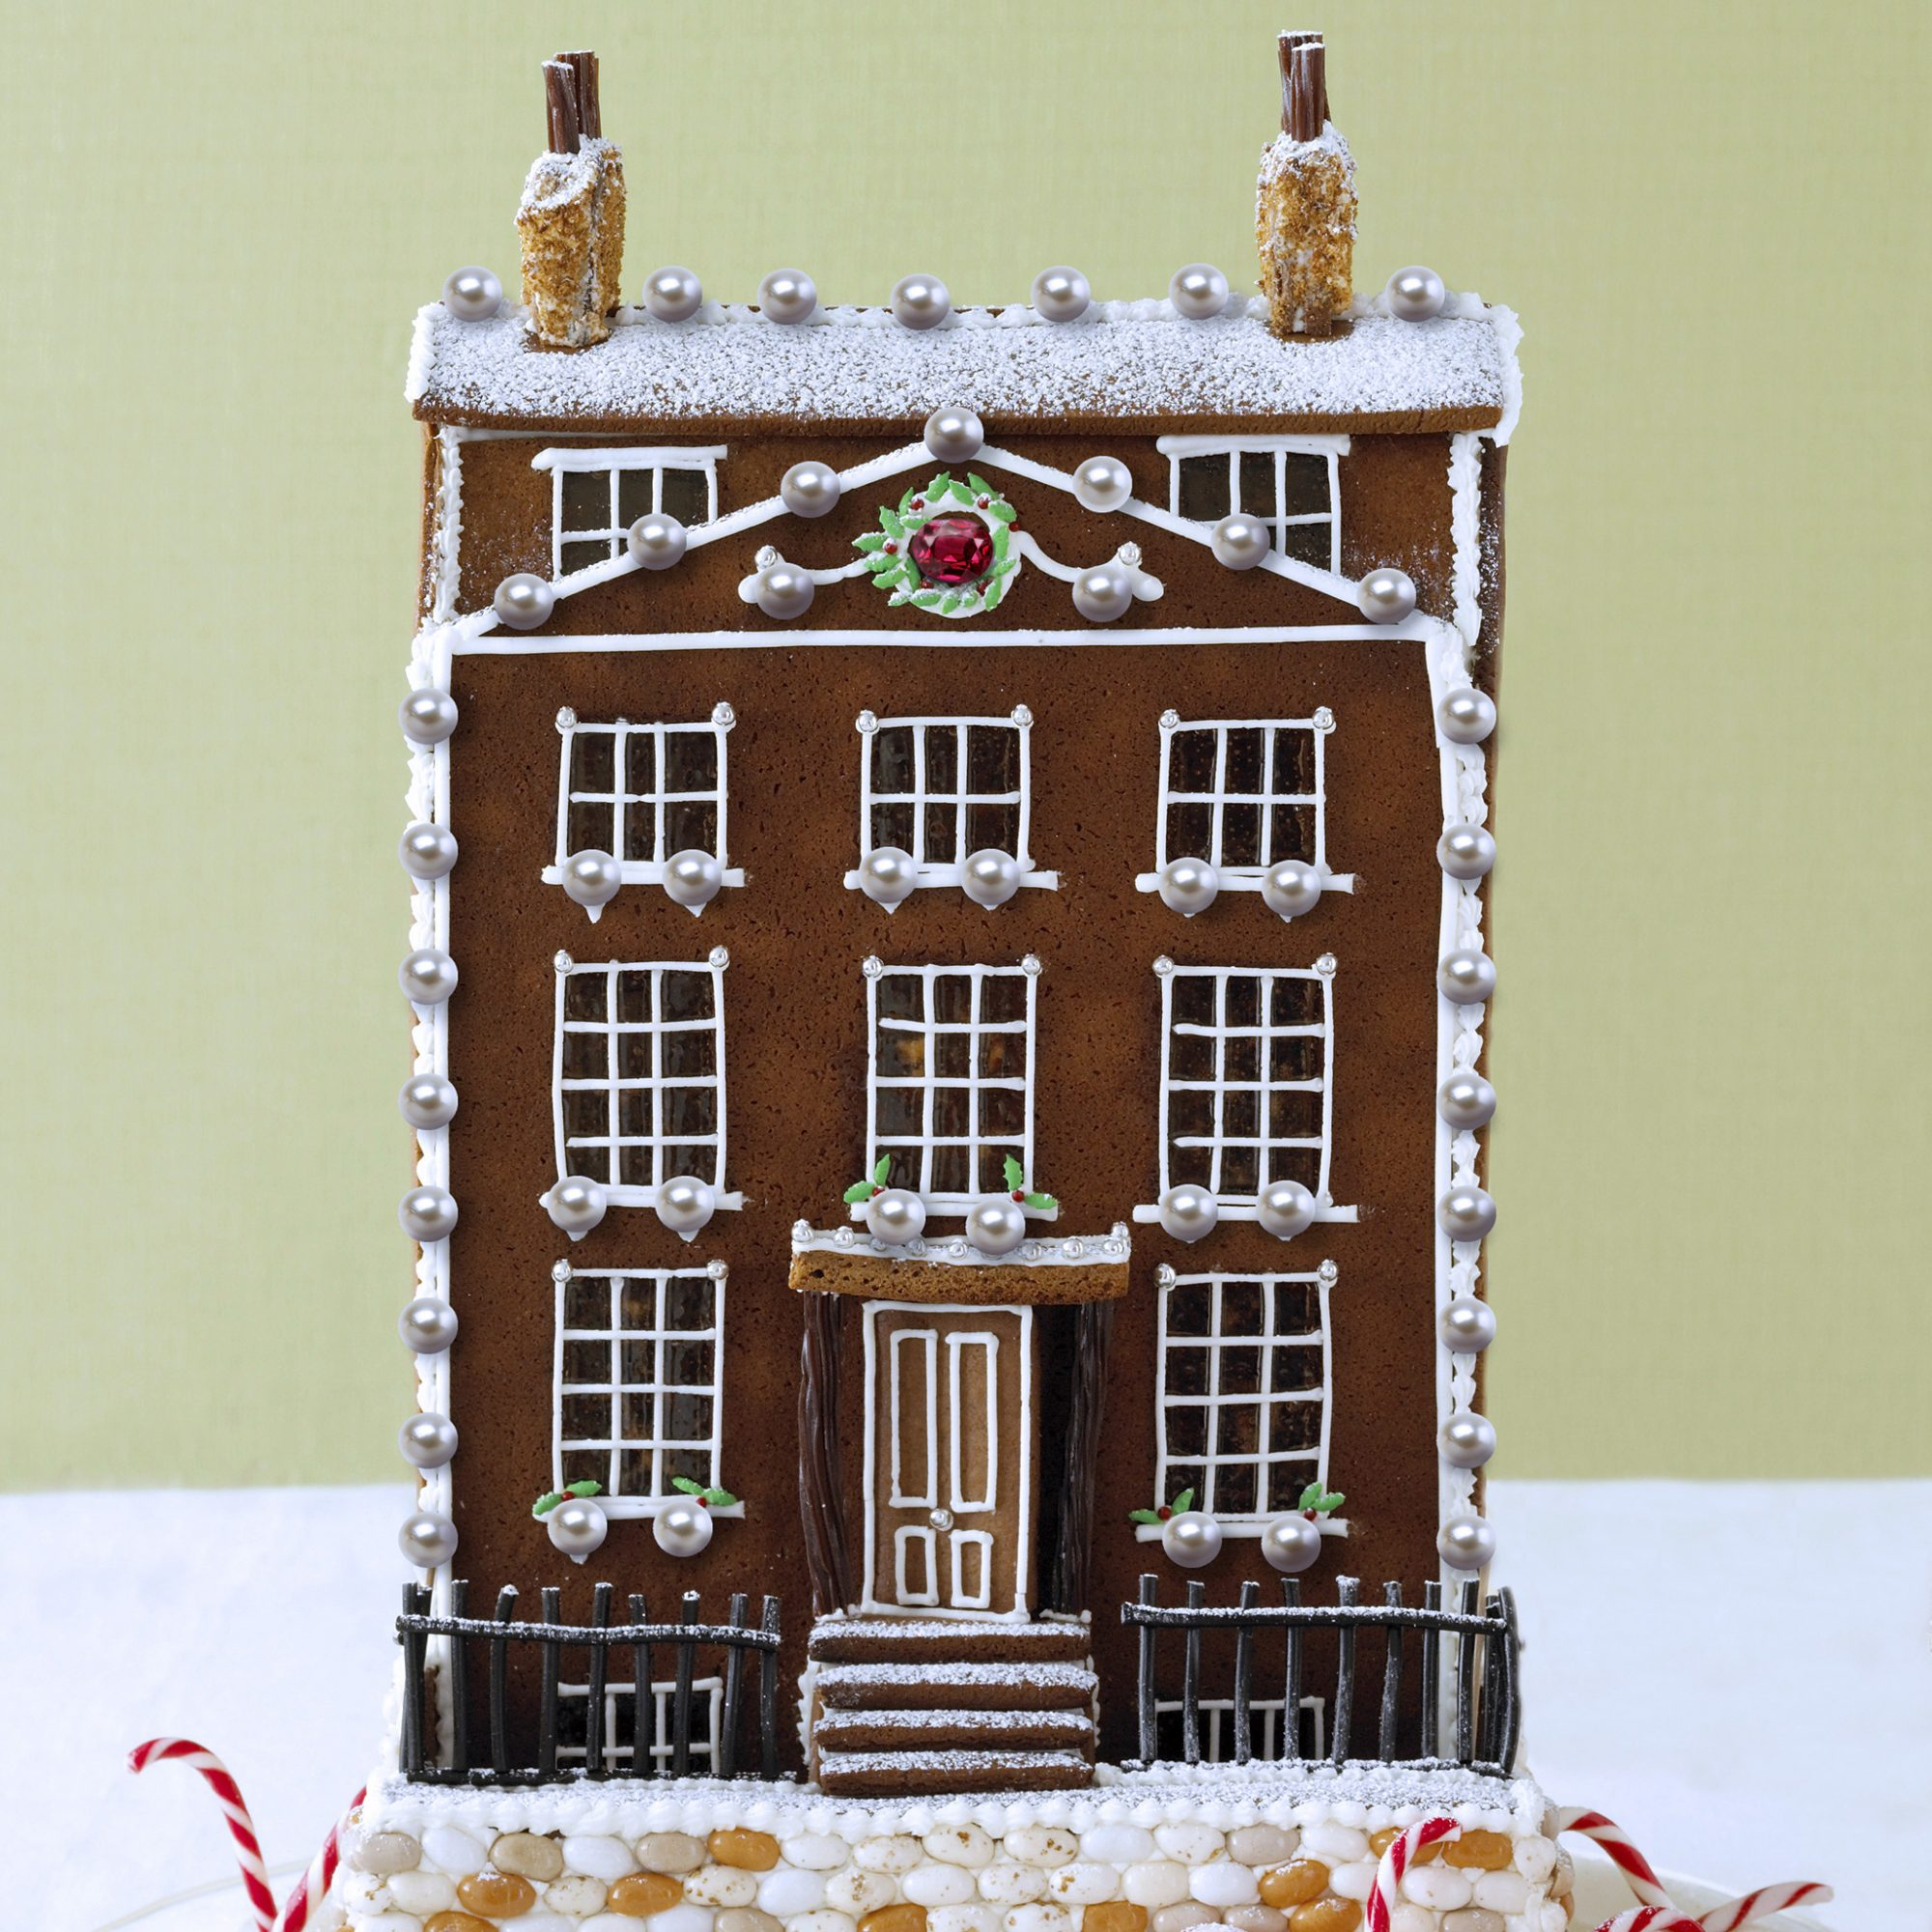 FWX EXPENSIVE GINGERBREAD HOUSE